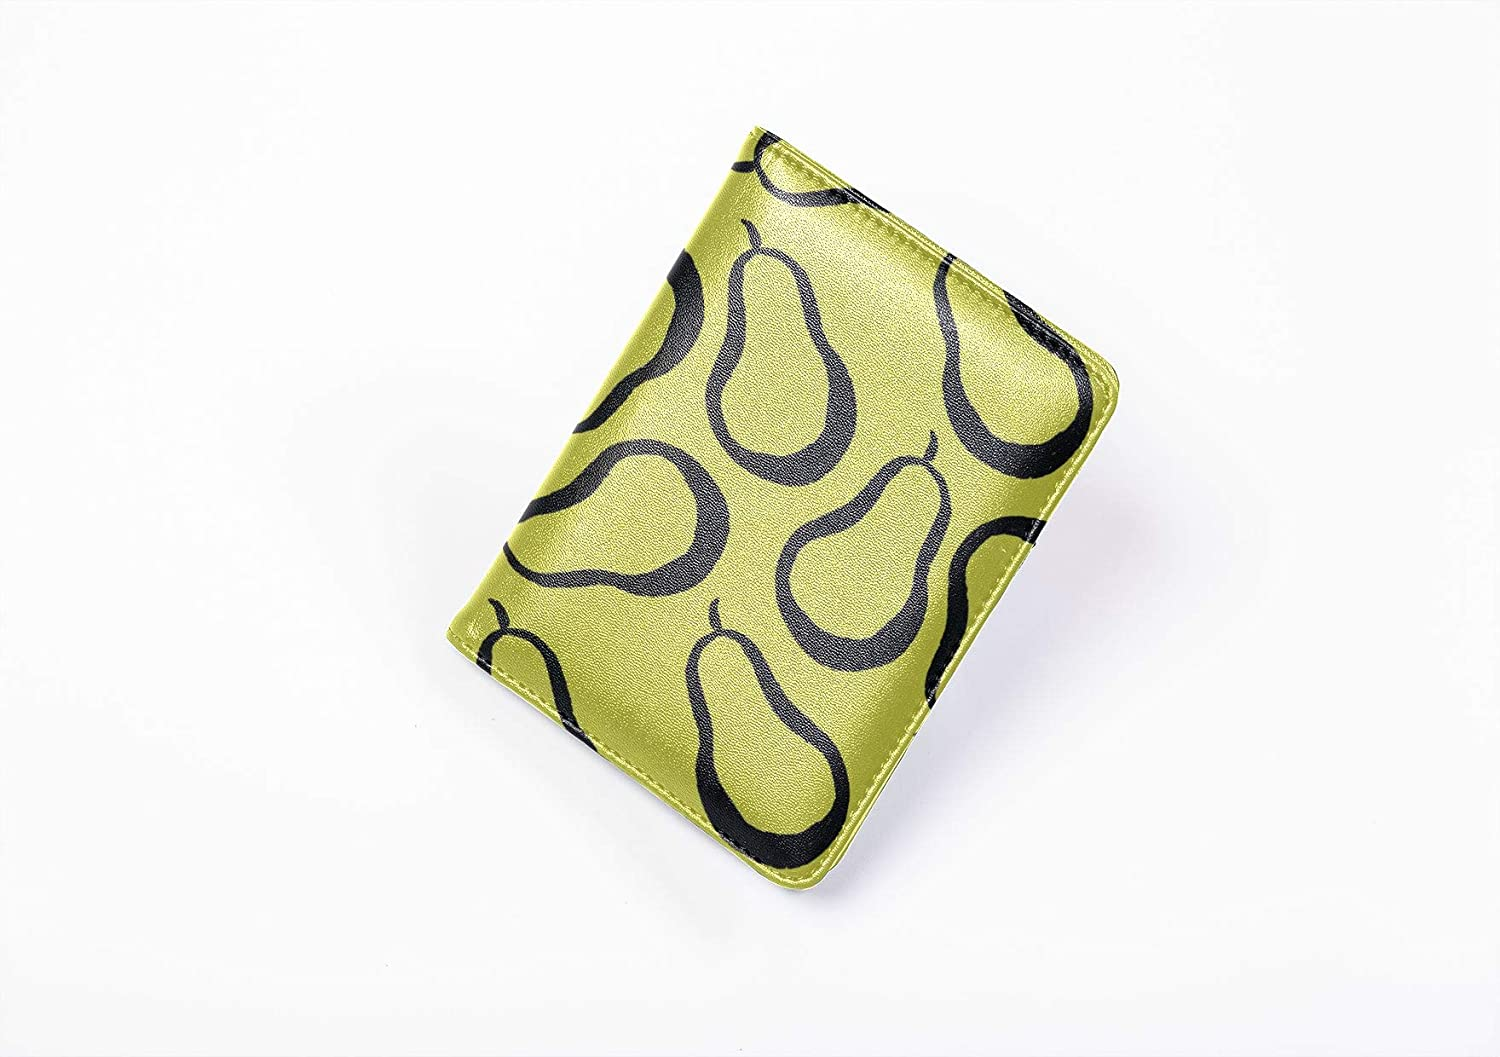 American Passport Cover Cute Summer Vintage Colorful Pear My Passport Case Multi Purpose Print Baby Passport Cover Travel Wallets For Unisex 5.51x4.37 Inch